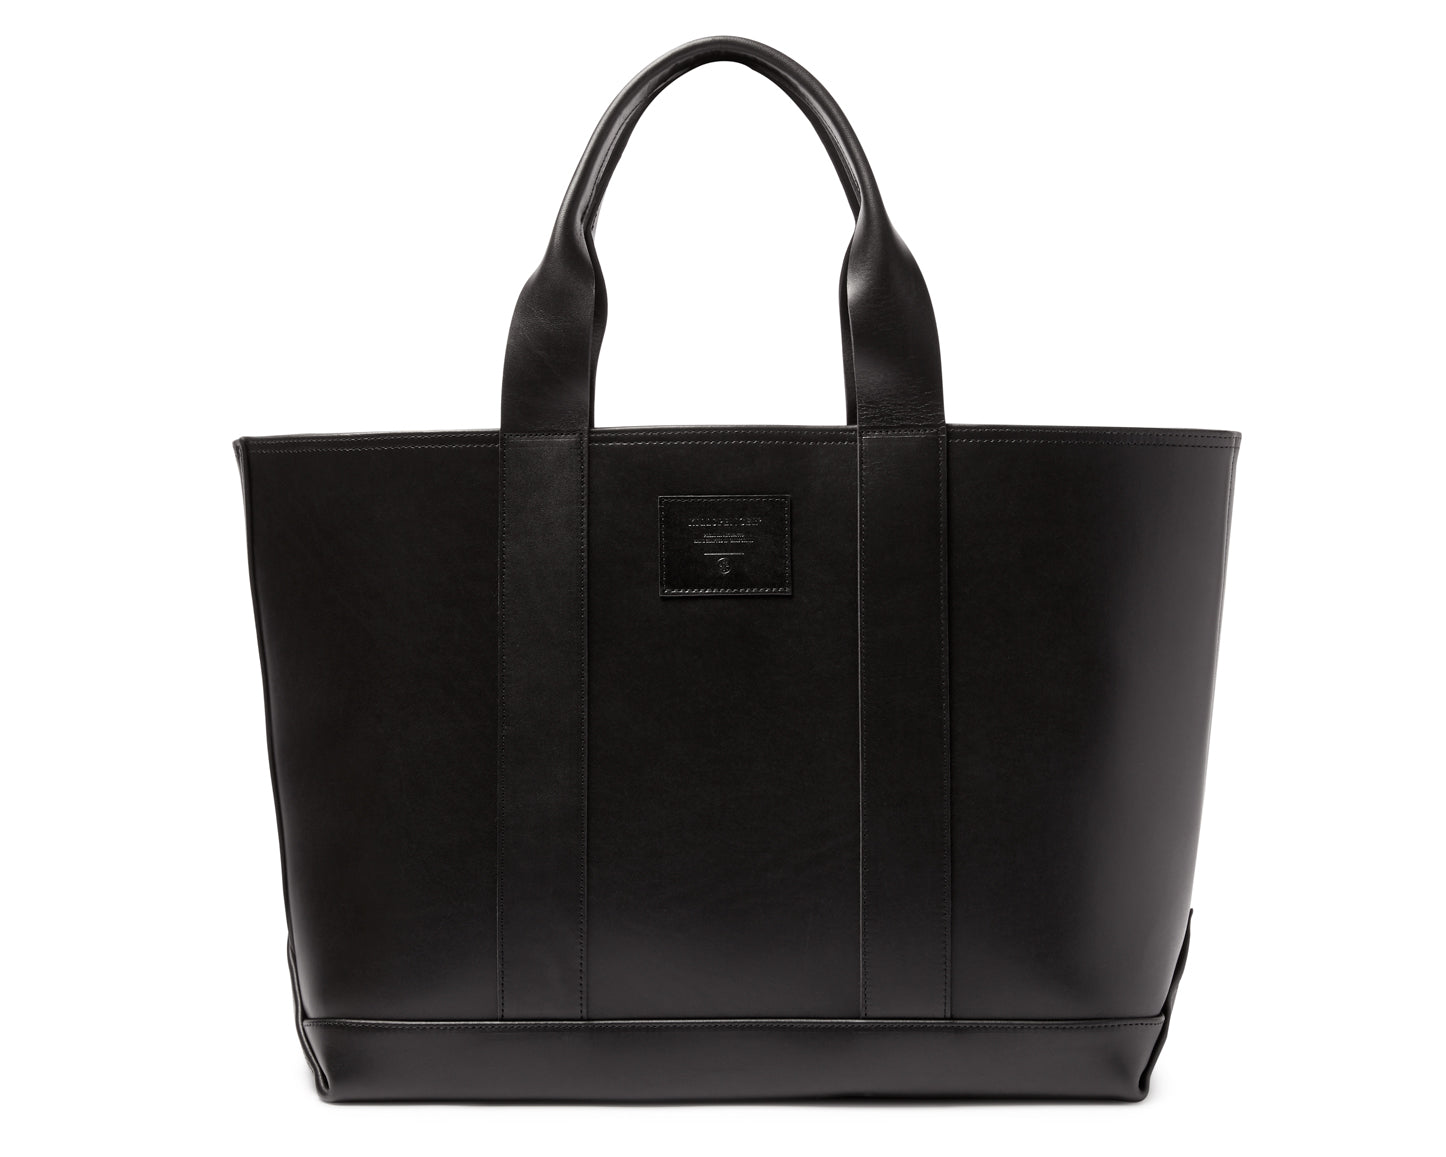 MEGA TOTE | KILLSPENCER® - Black Bullhide  Leather